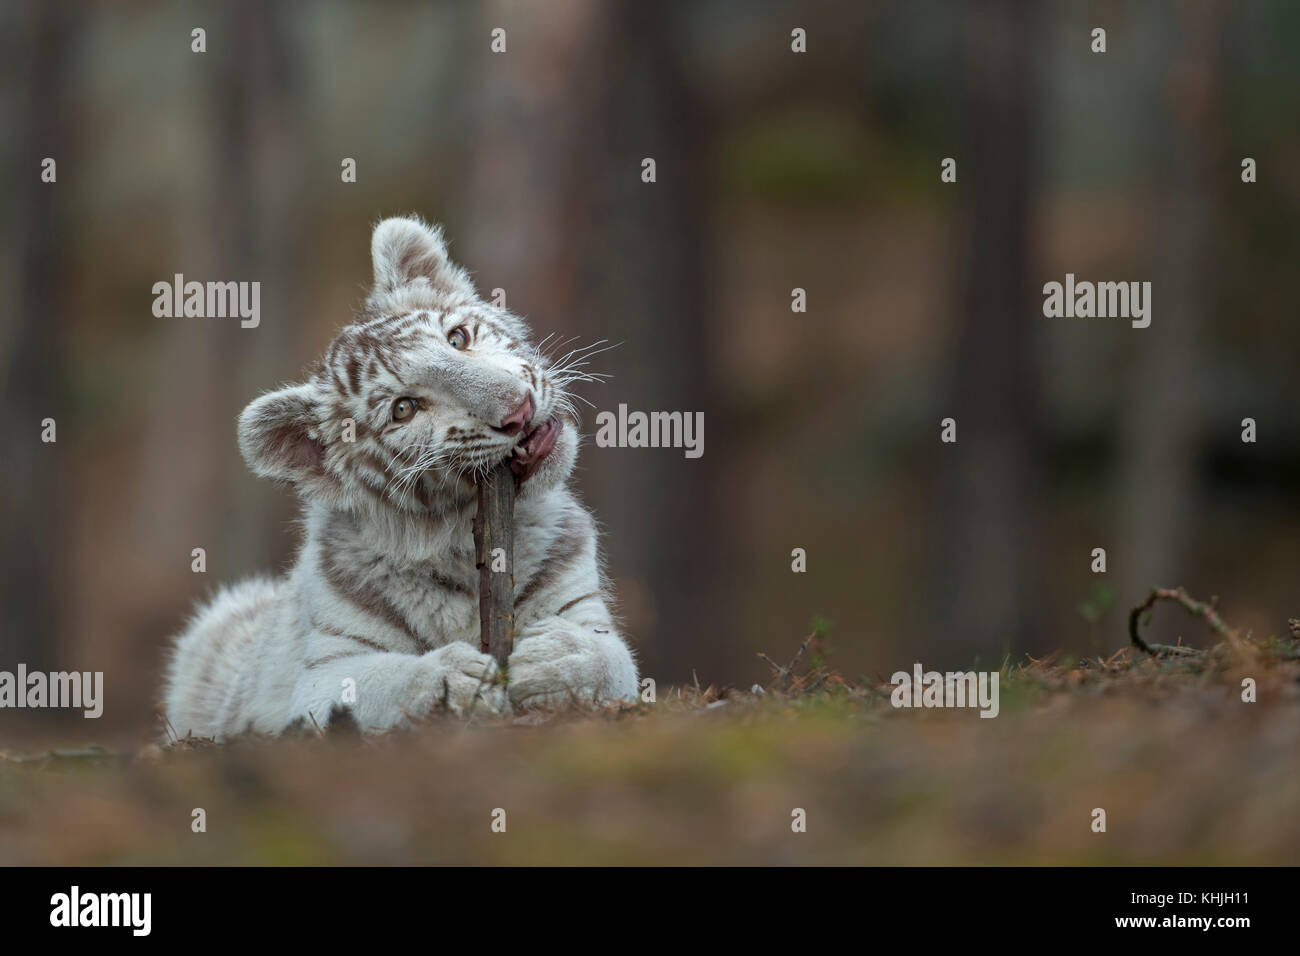 Royal Bengal Tiger ( Panthera tigris ), young cub, kitten, lying on the ground of a forest, playing with, biting - Stock Image